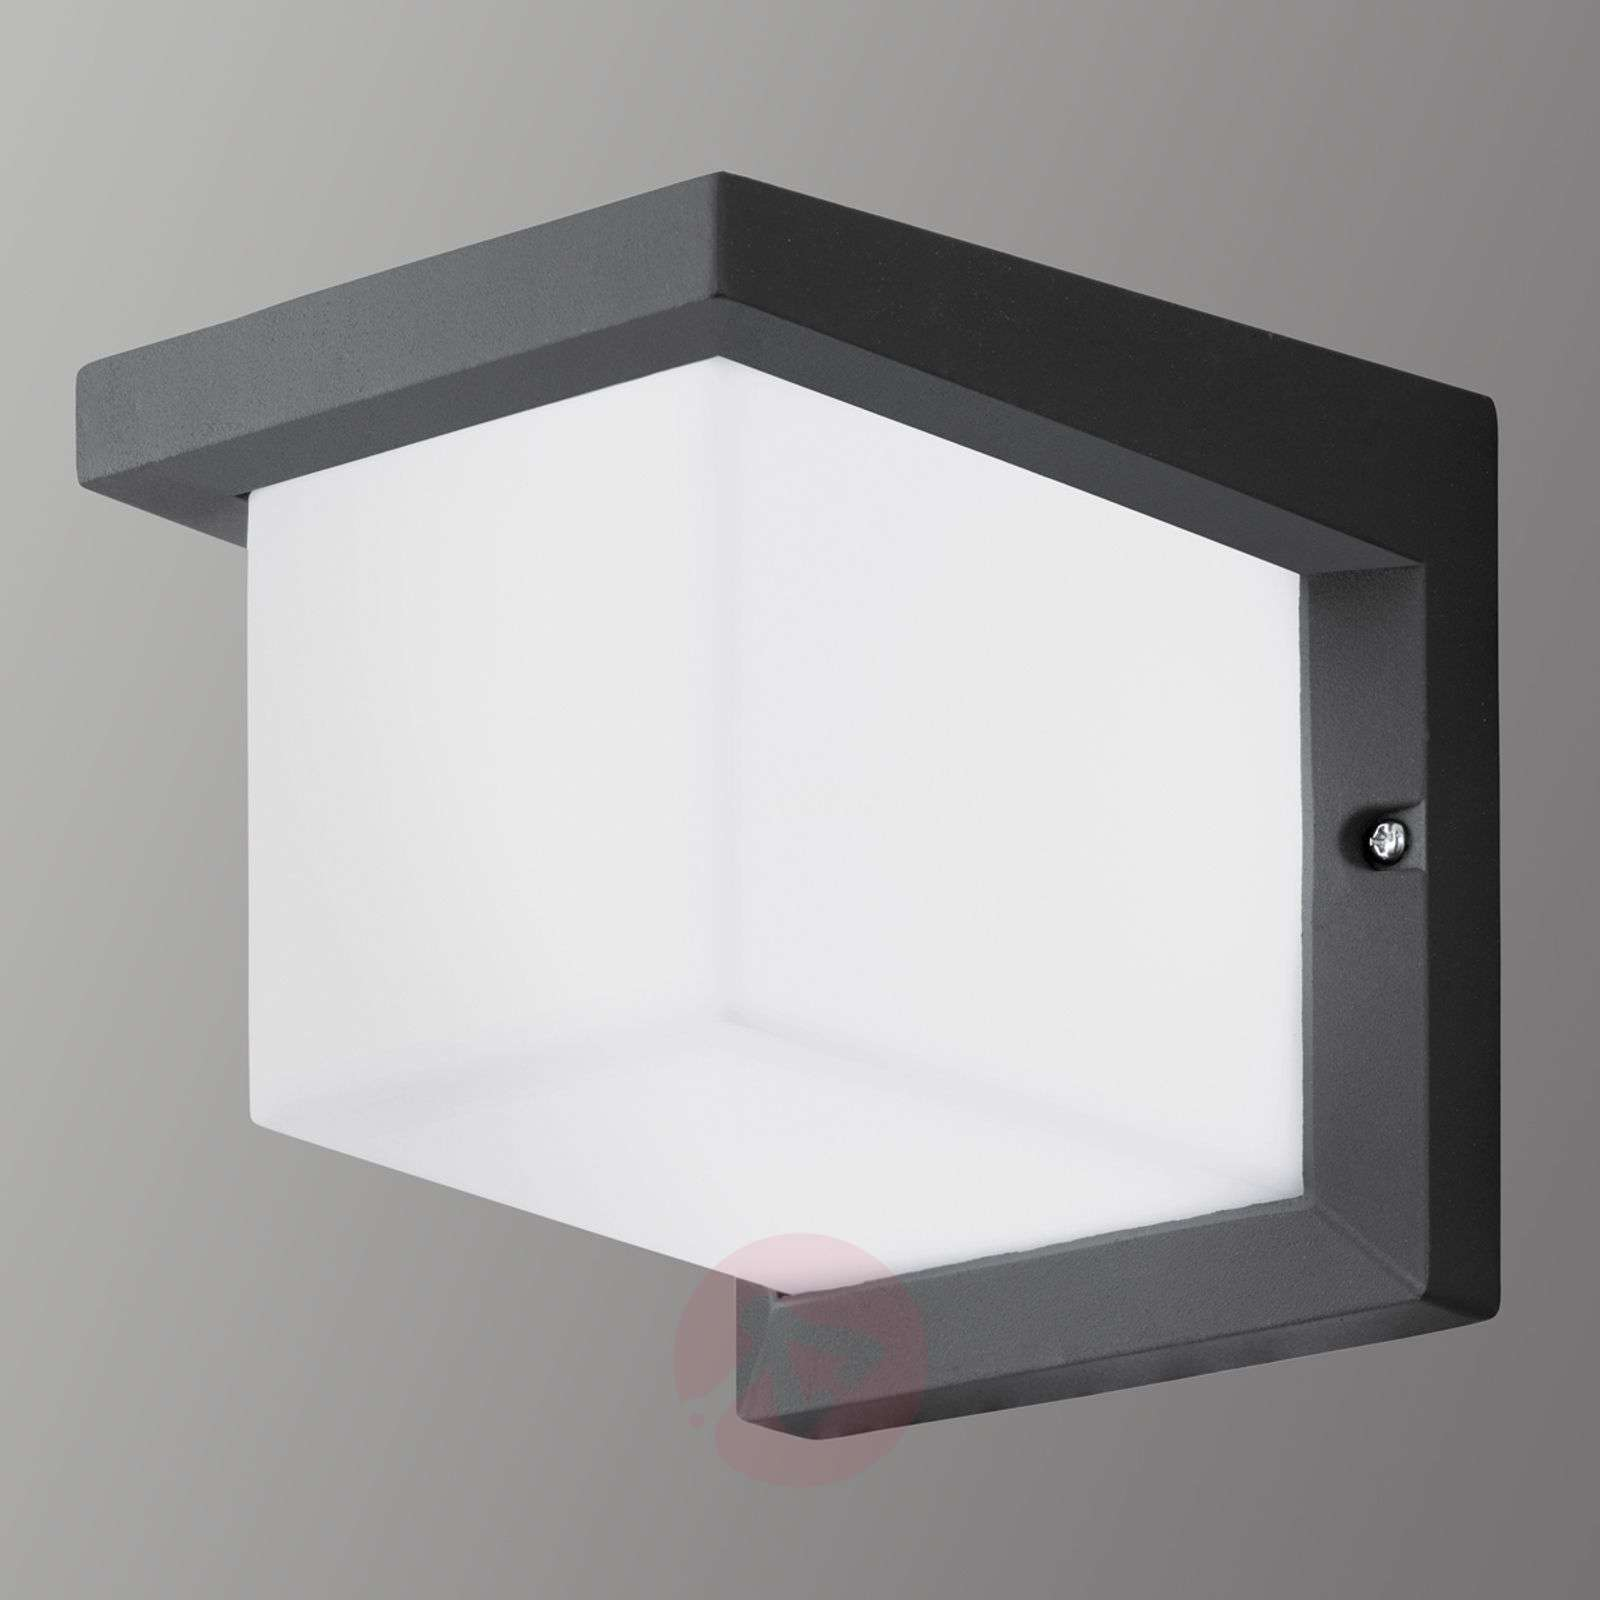 Cube shaped desella led outdoor wall light lights cube shaped desella led outdoor wall light 3000514 01 aloadofball Image collections